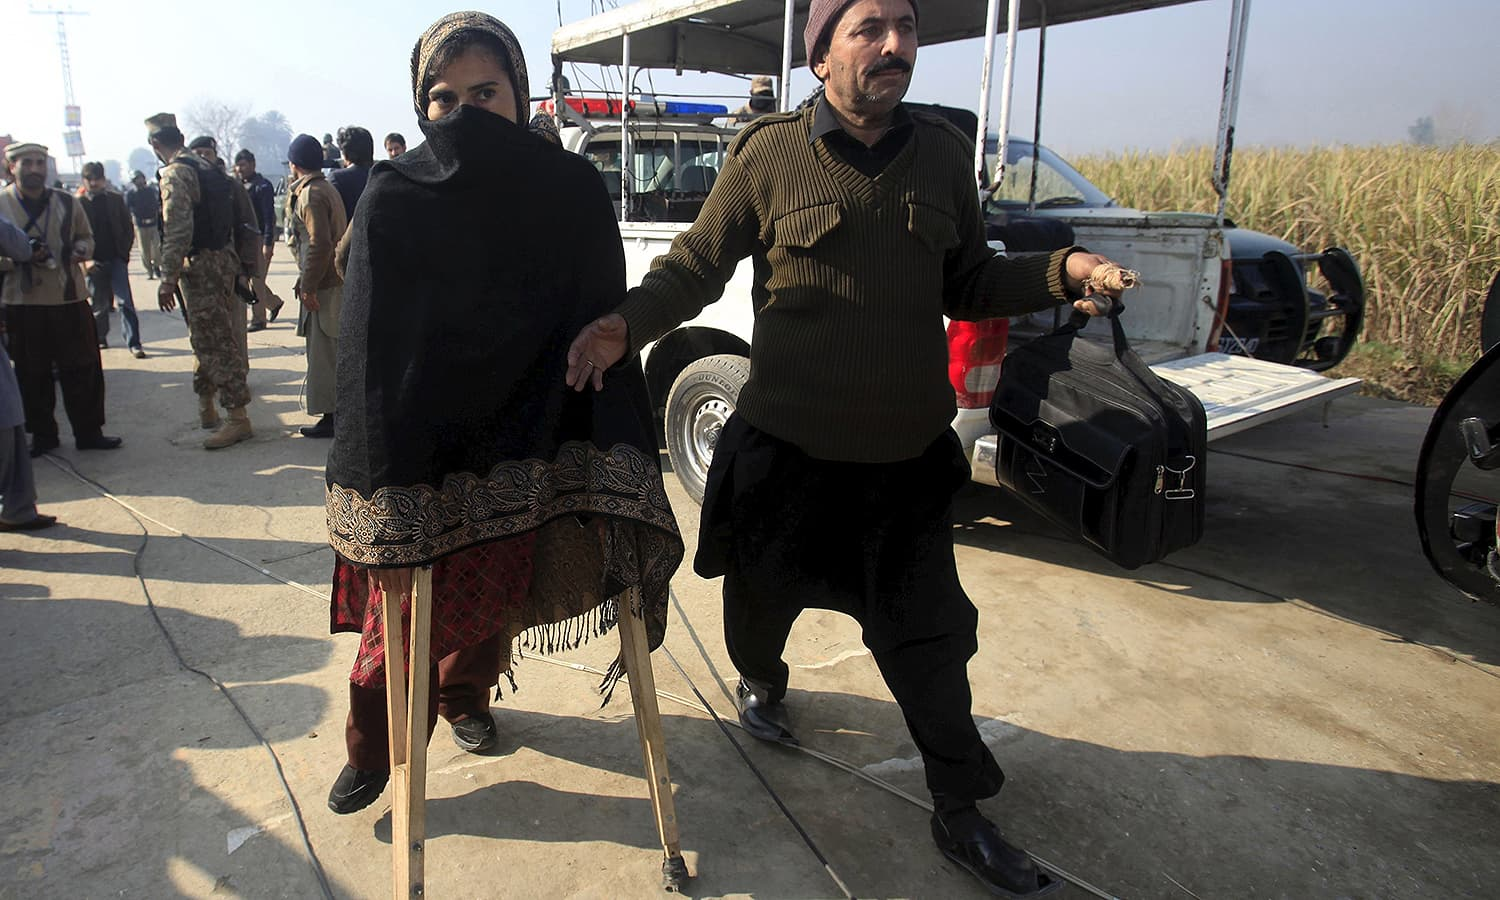 A teacher (L) walks with a pair of crutches following her rescue. Vice Chancellor Fazal Rahim told reporters that the university teaches over 3,000 students and was hosting an additional 600 visitors on Wednesday for the recital. Students spoke of one teacher, named by the media as Syed Hamid Hussain, fighting back against the intruders, shooting his weapon in a bid to protect his students. — Reuters